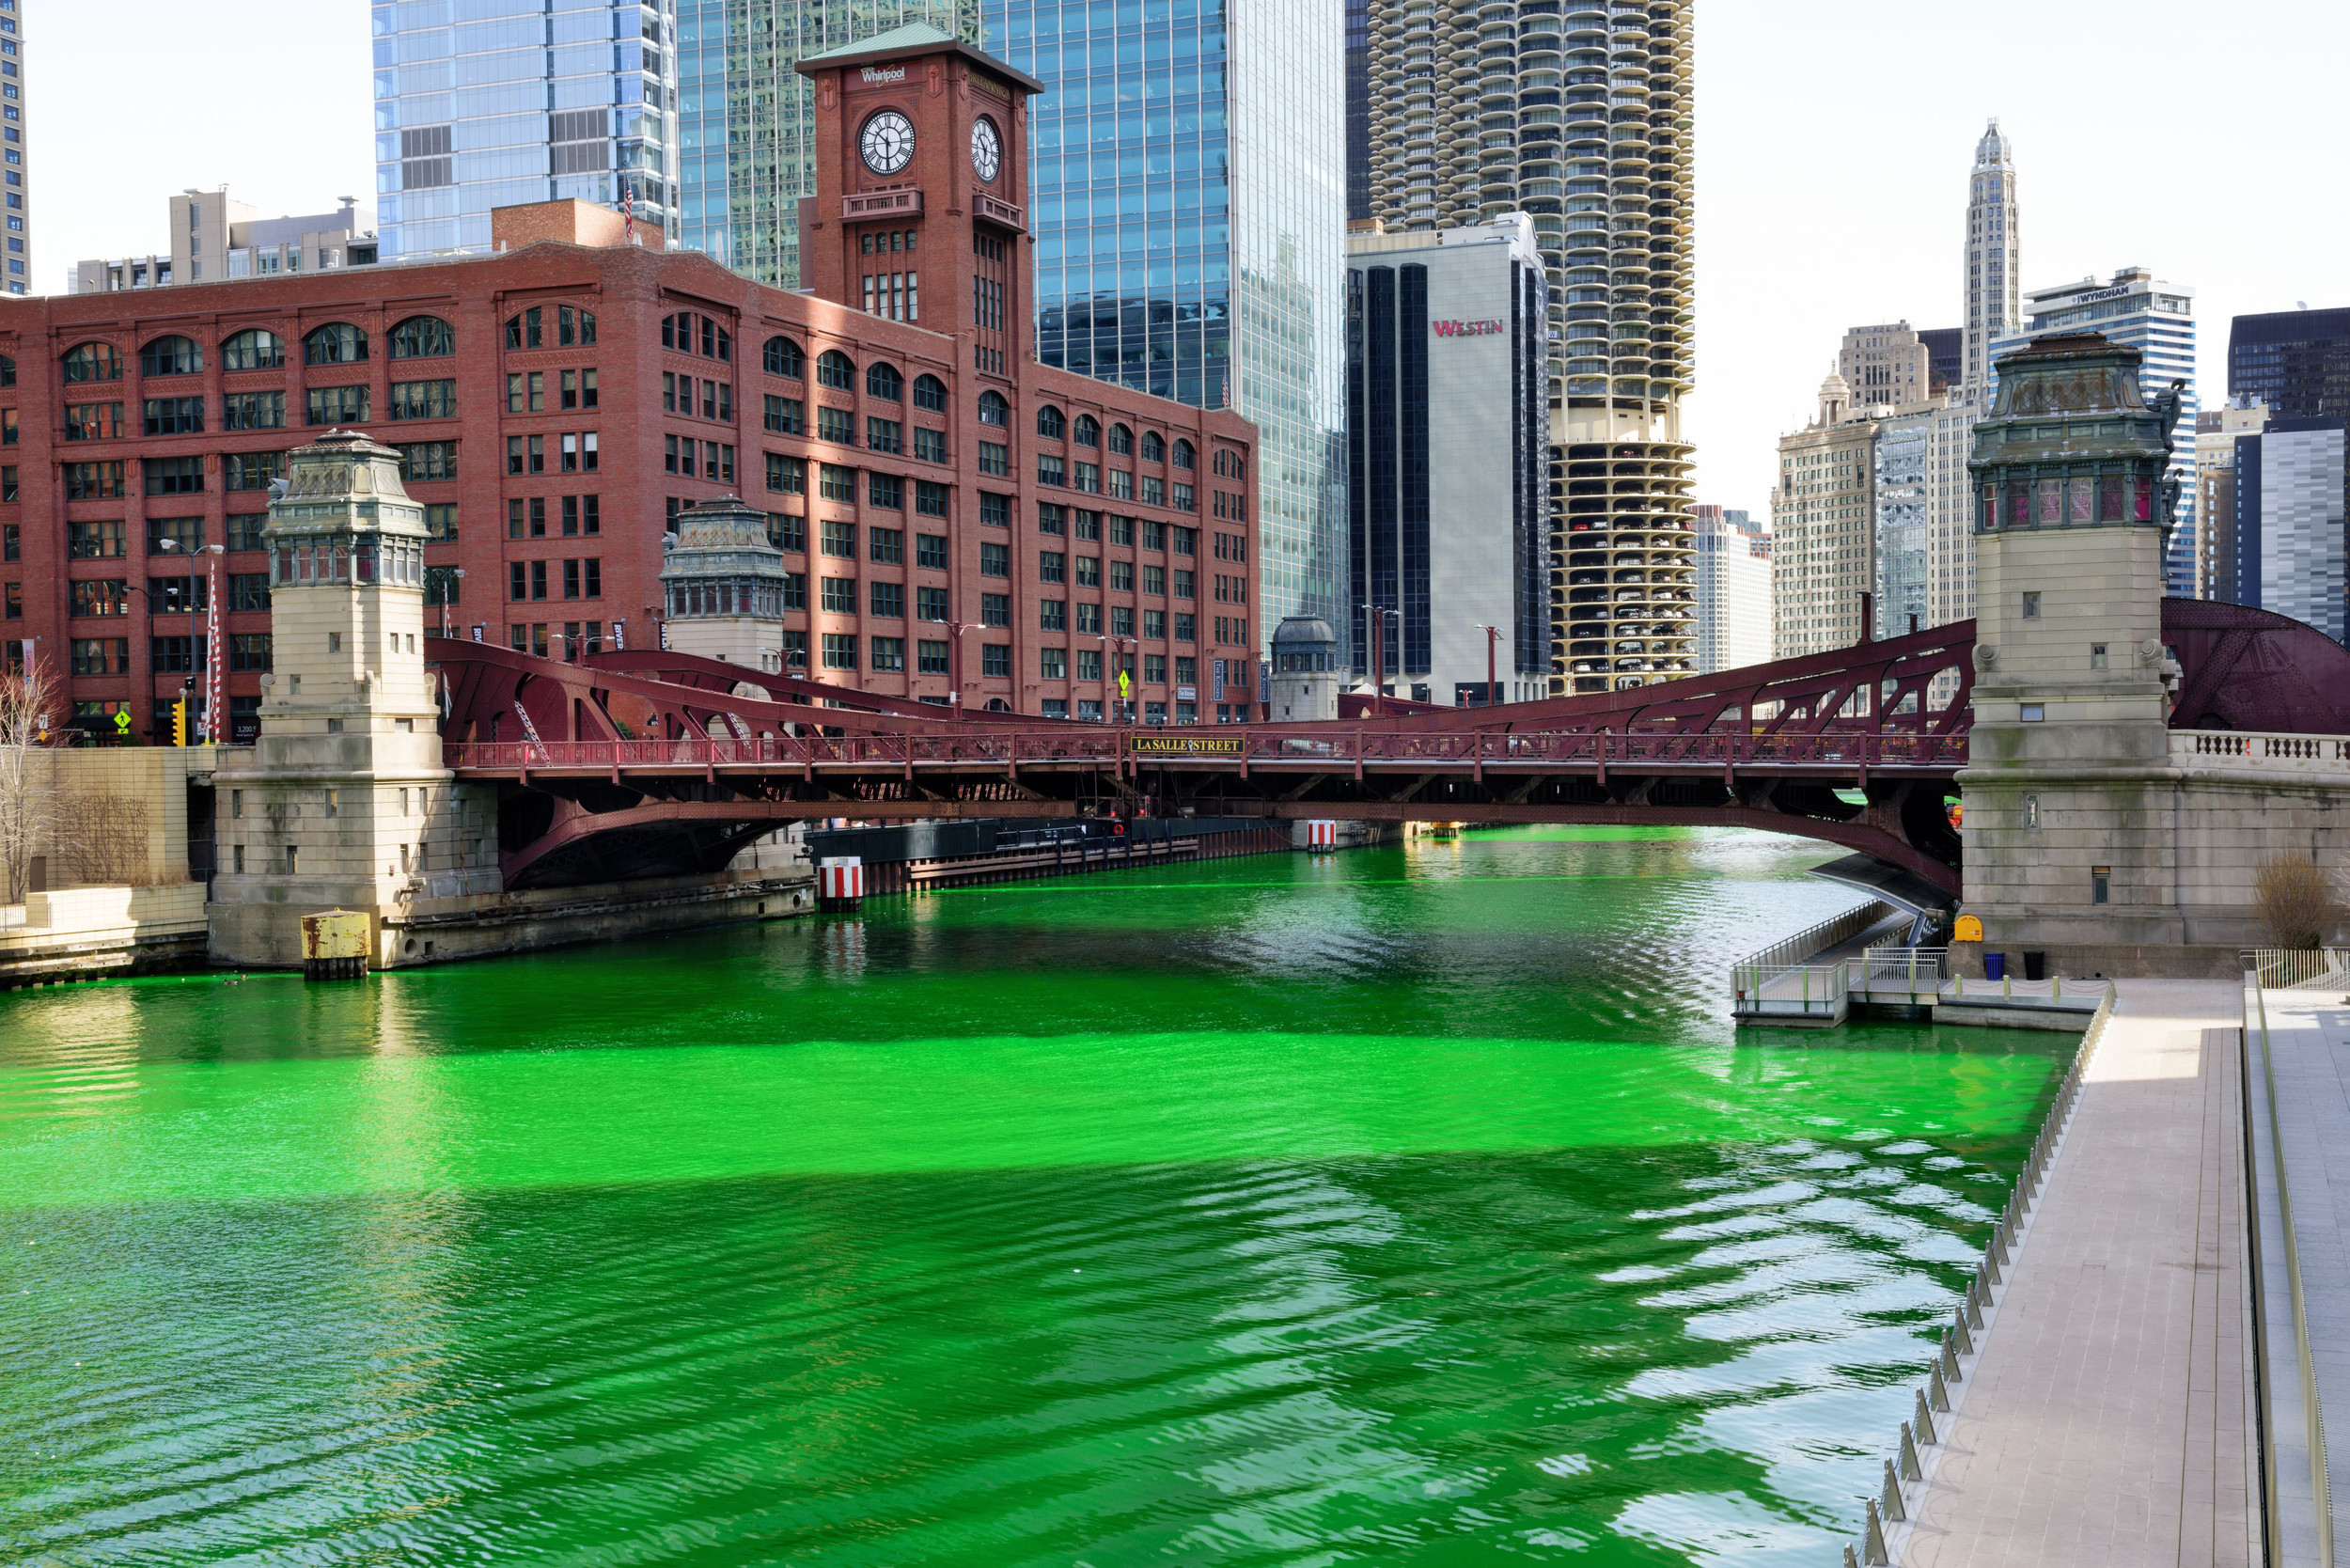 Celebrate St. Patrick's Day like a Chicagoan